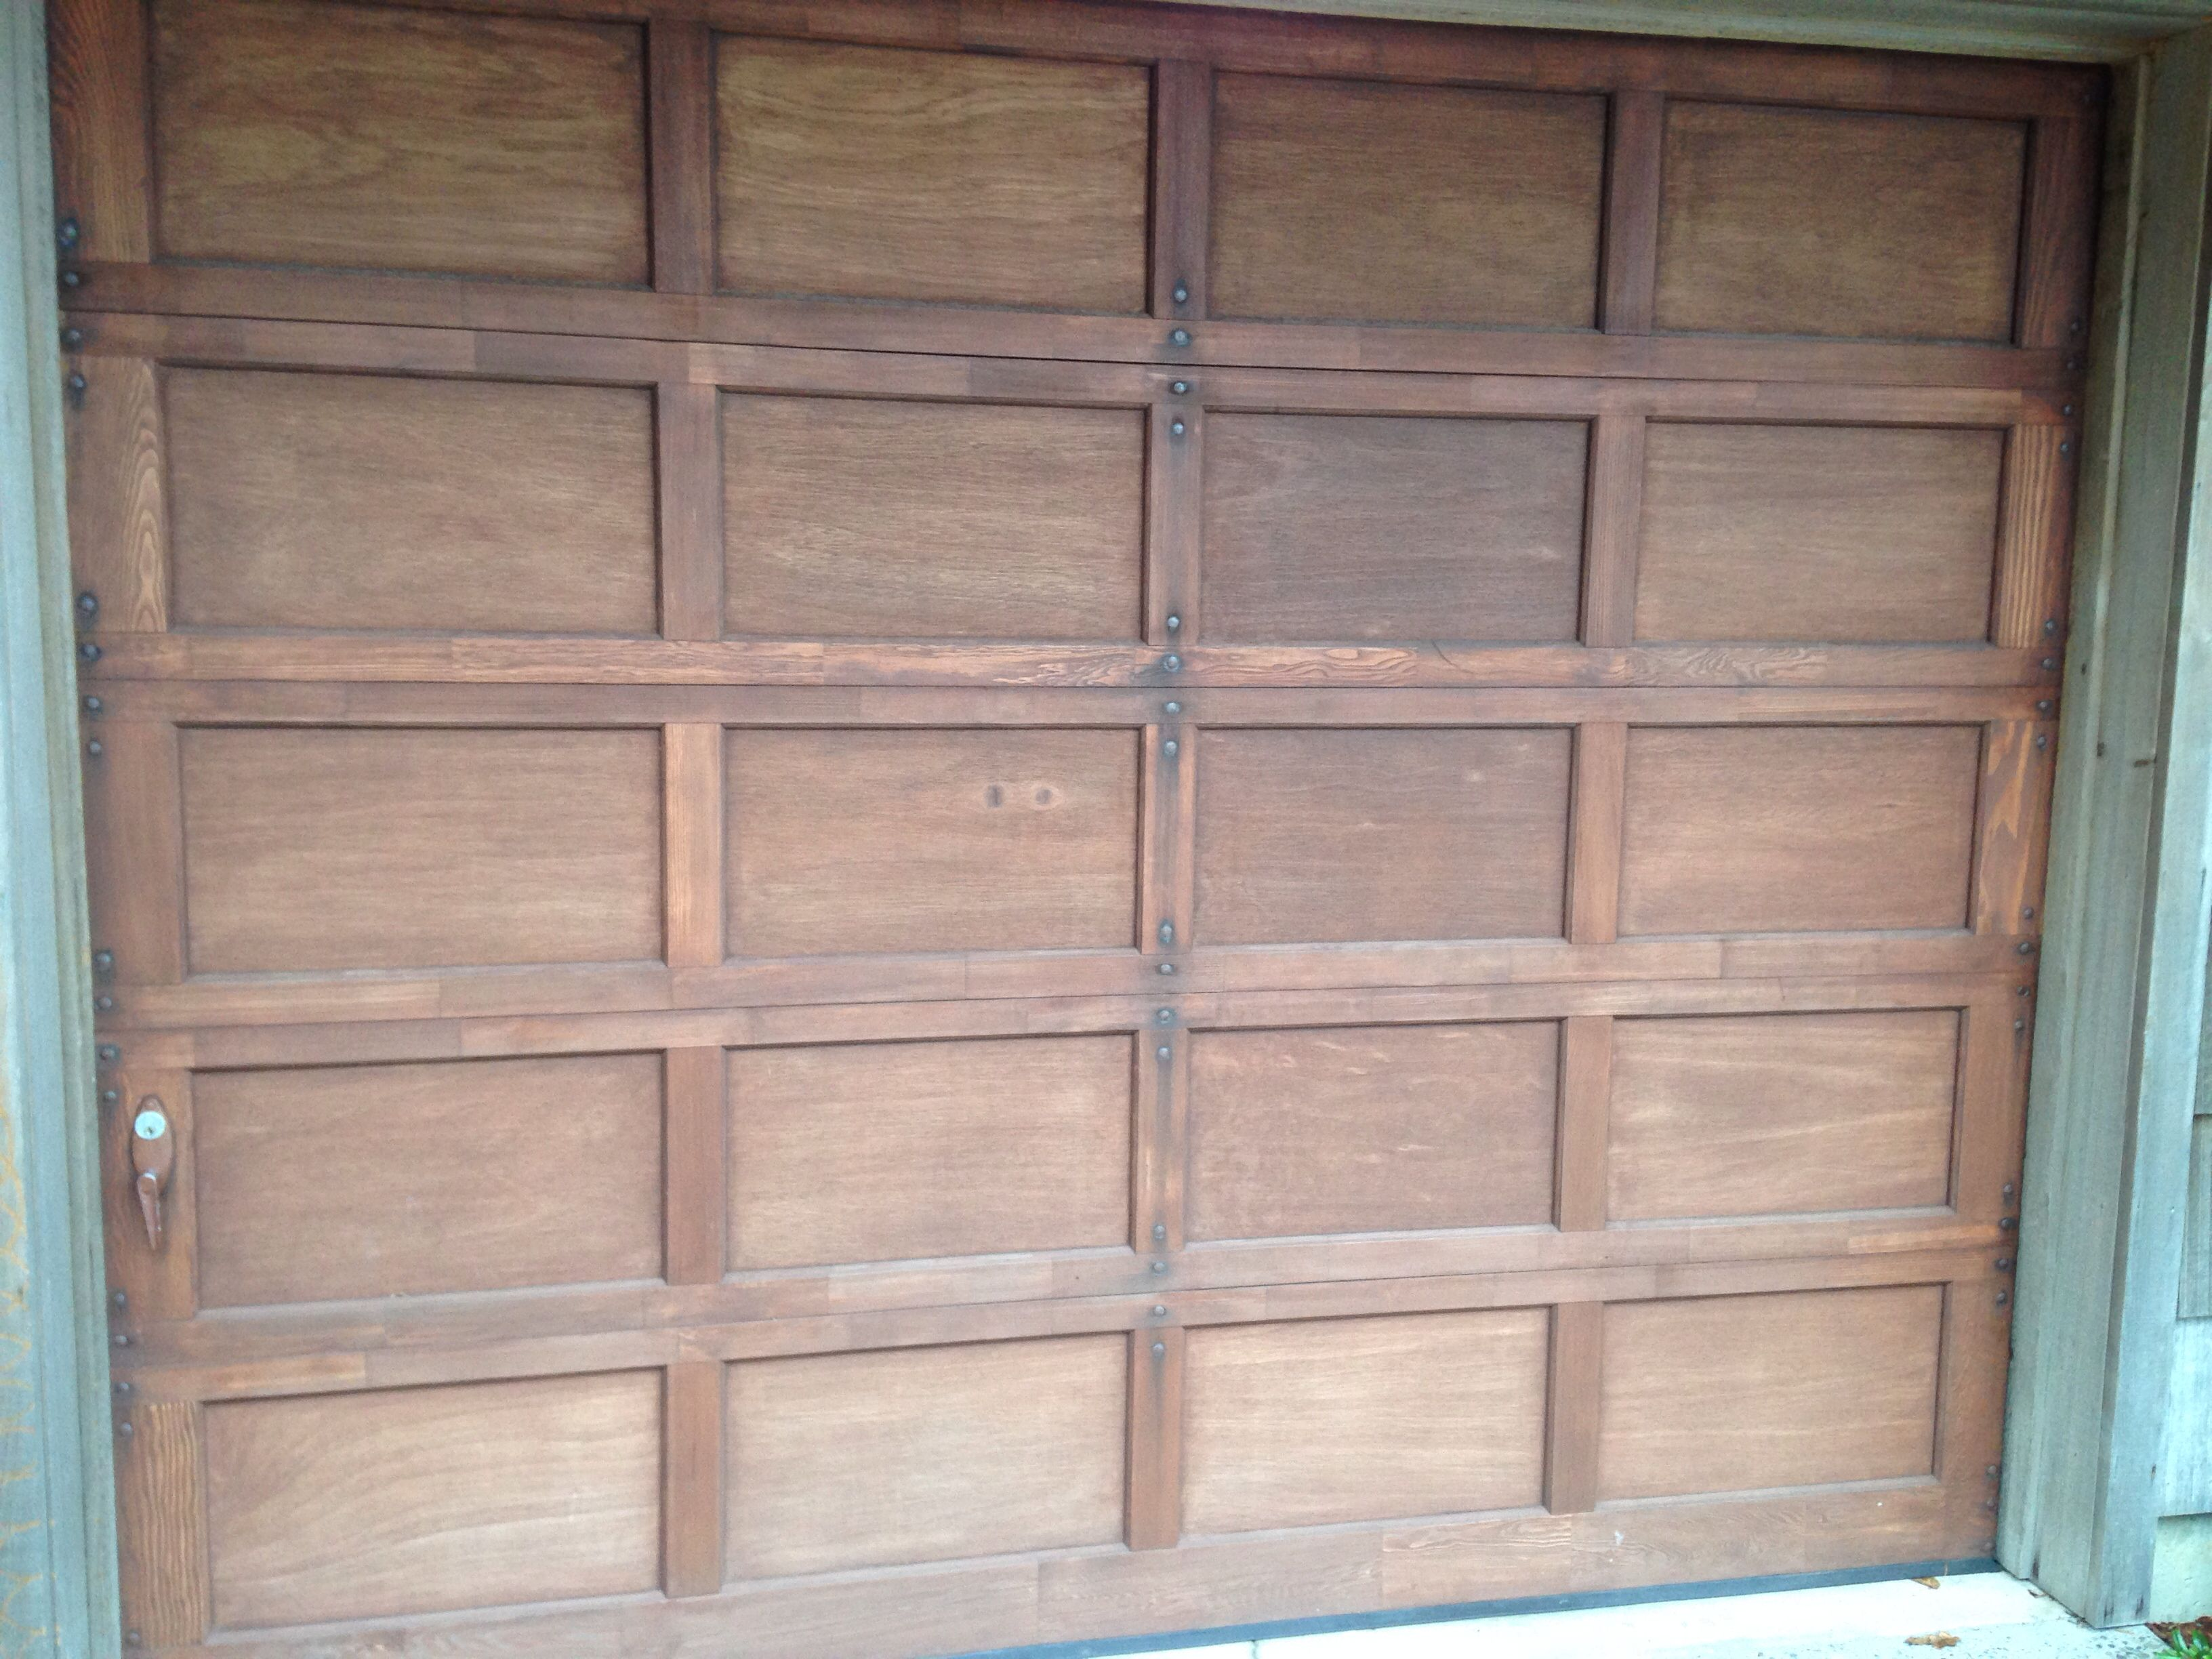 People Often Upgrade Their Old Wood Recessed Panel Garage